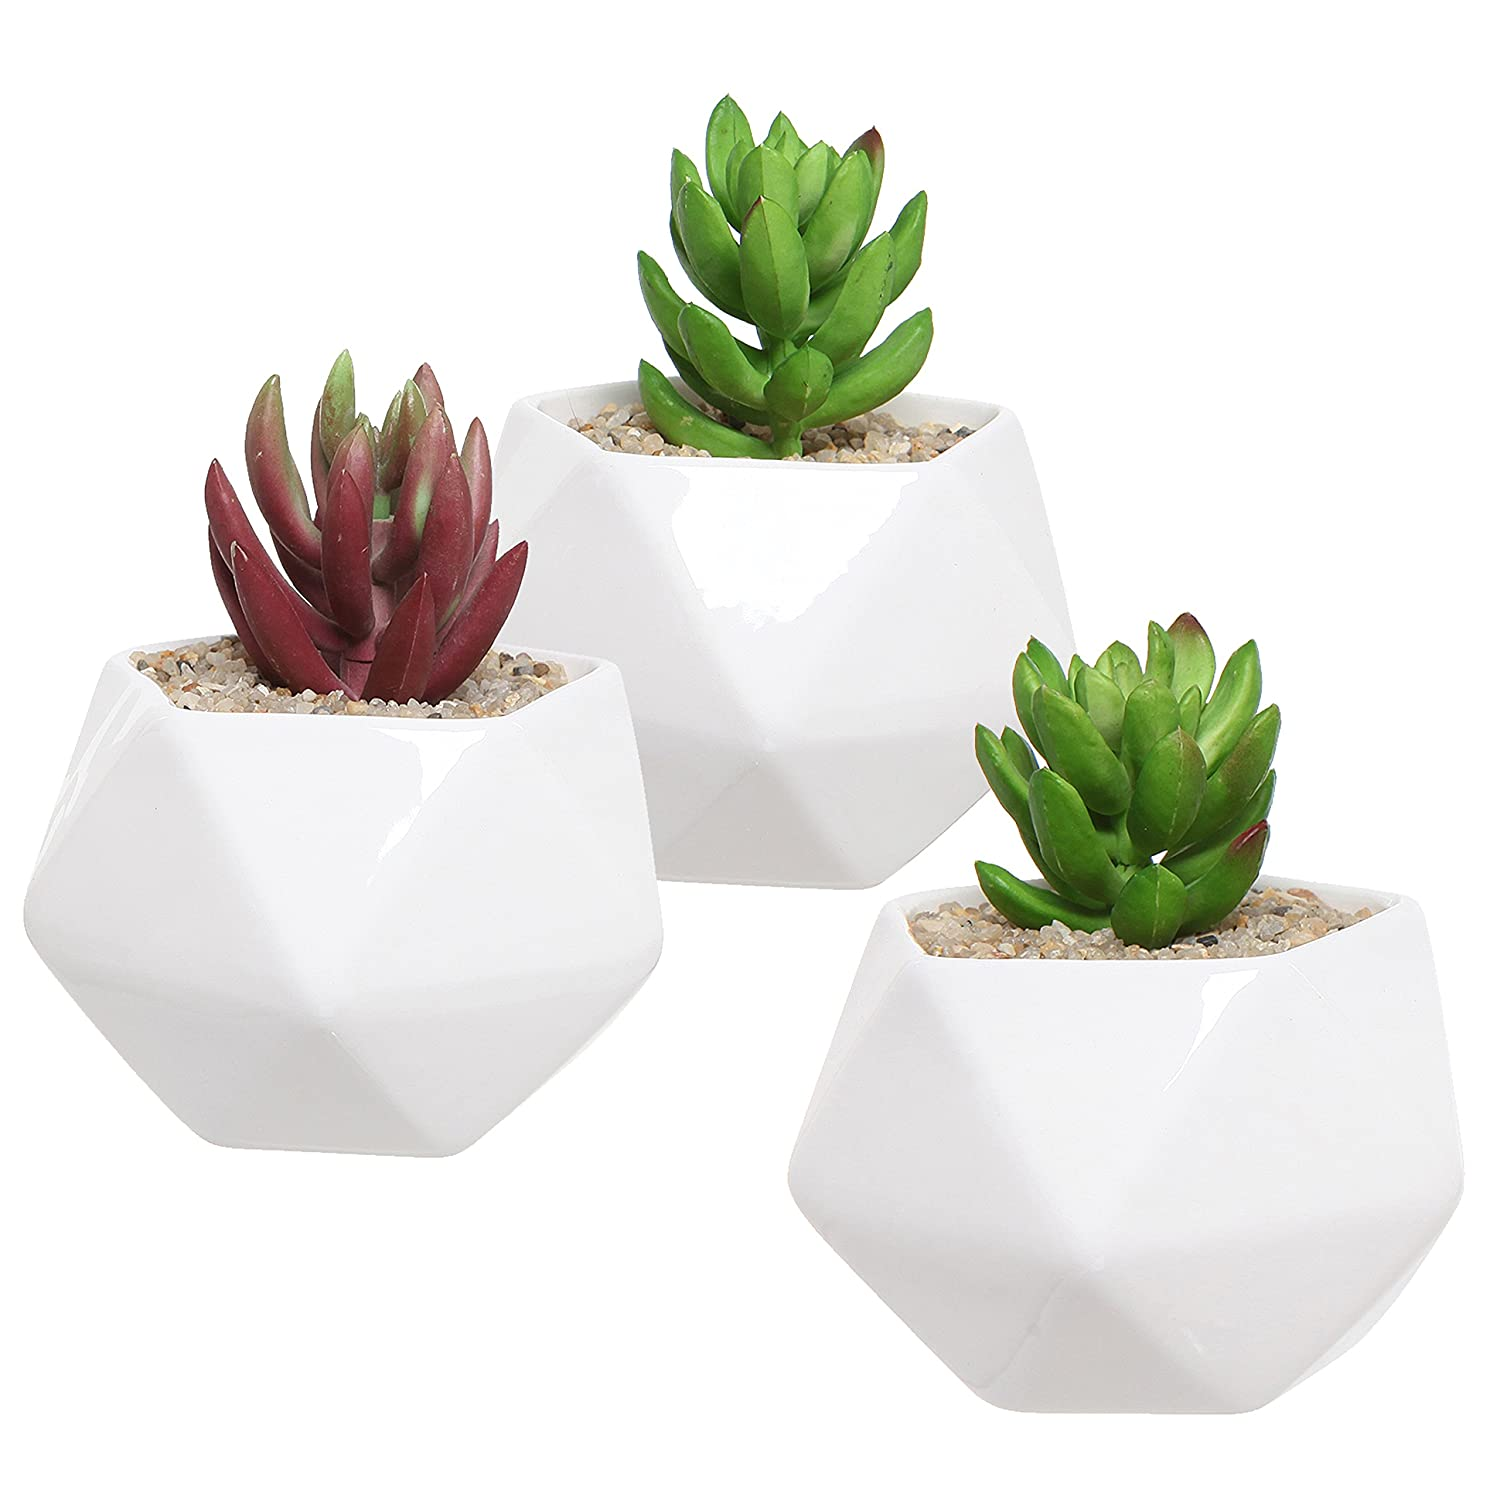 Amazon.com: Set of 3 White Ceramic Succulent Plant Pots ...